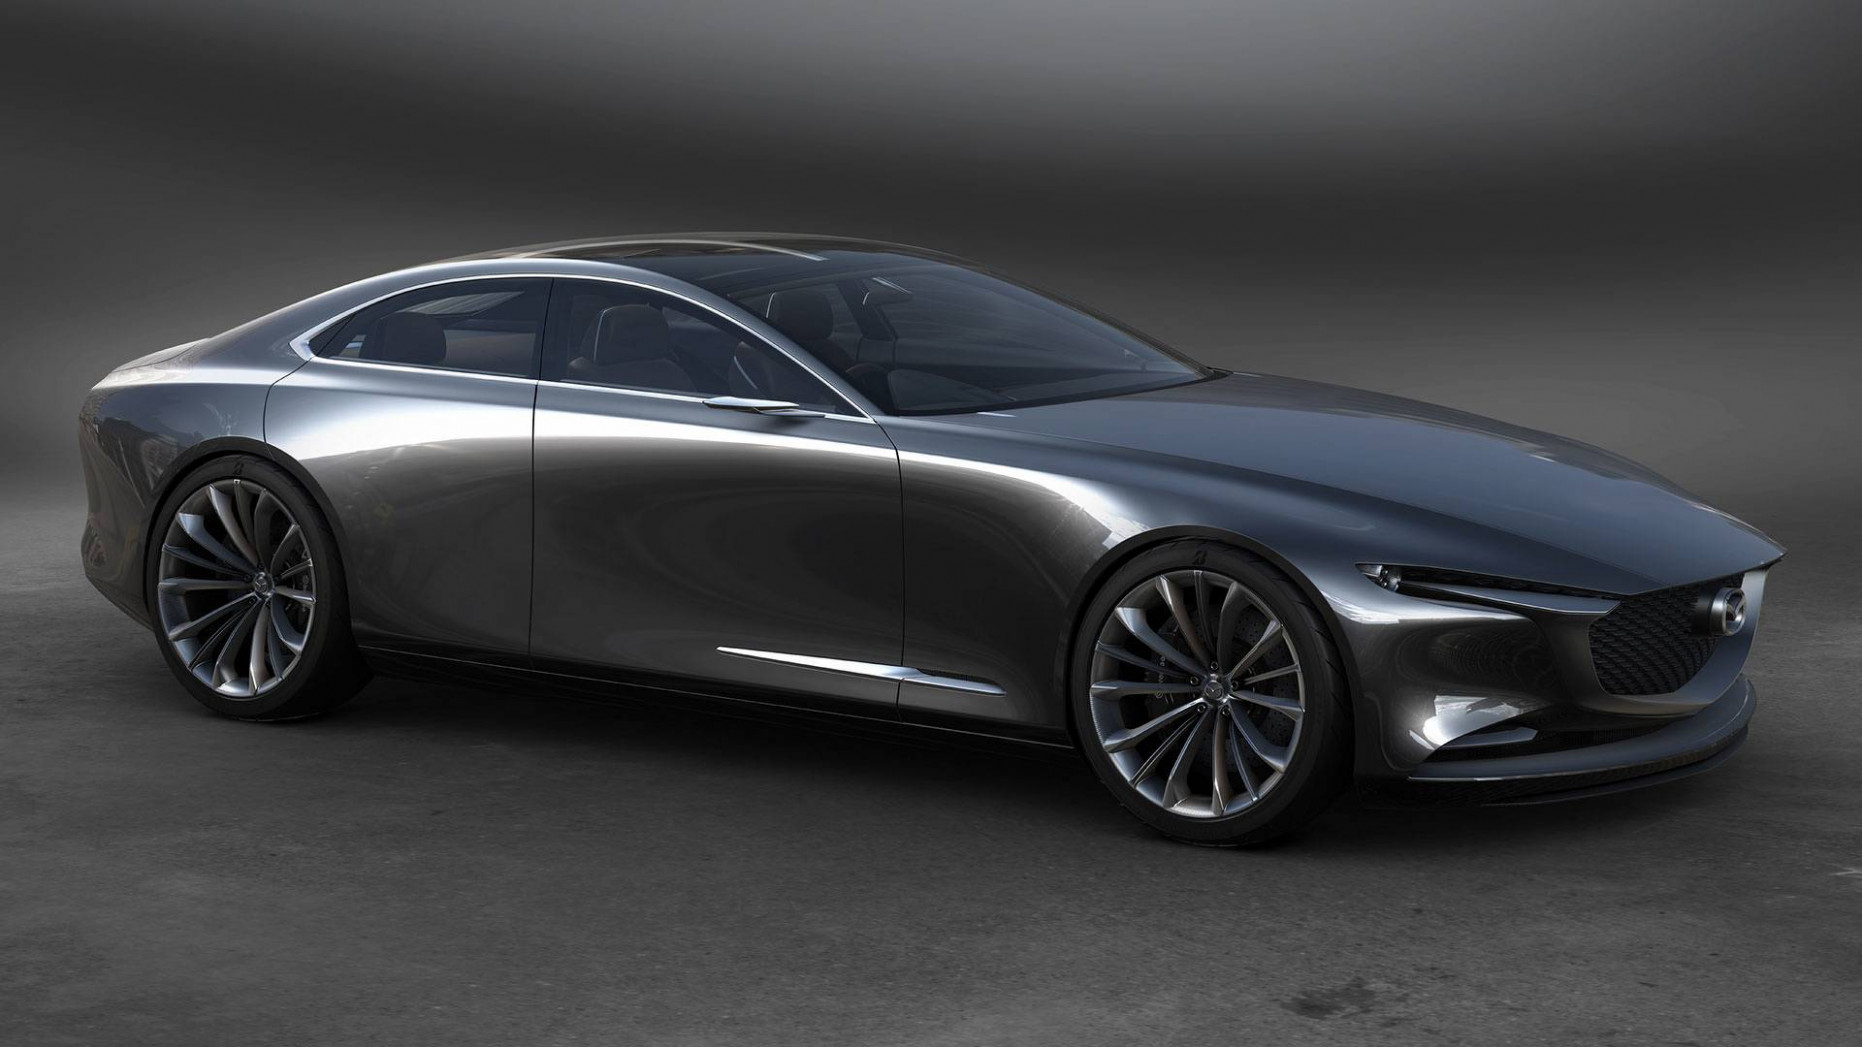 Mazda Vision Coupe Concept Takes Kodo - Soul Of Motion Design To ..